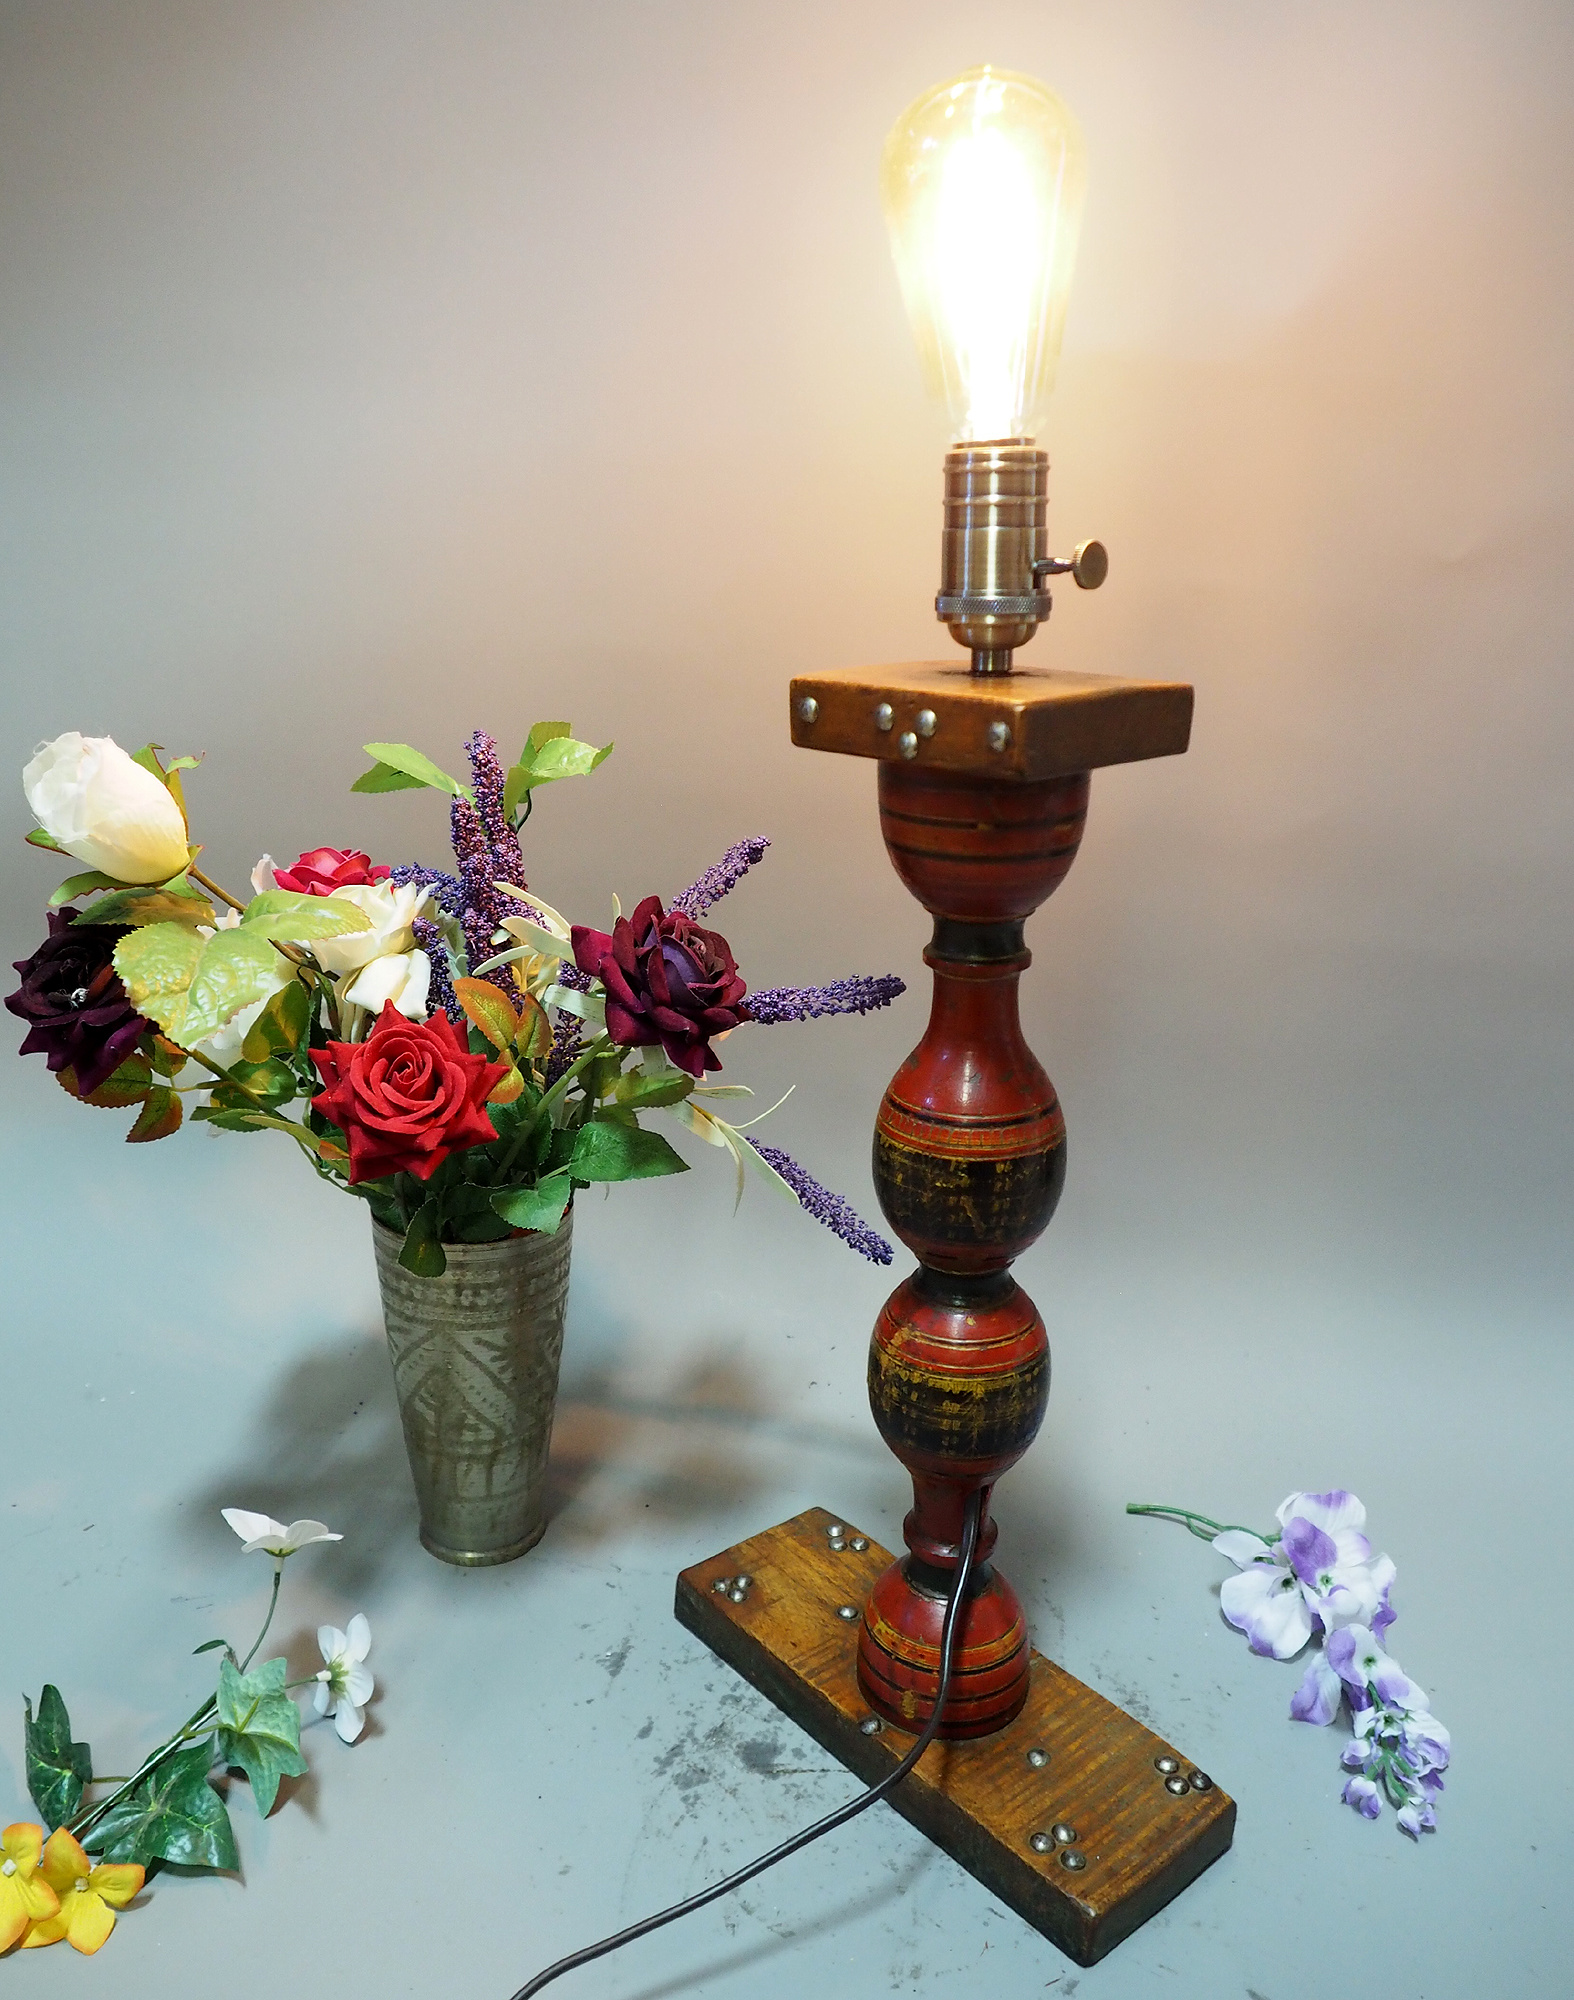 Antique handpainted stunning Vintage Lacquerware wooden Table Lamp with Vintage light fitting from Afghanistan / Pakistan No:21/6